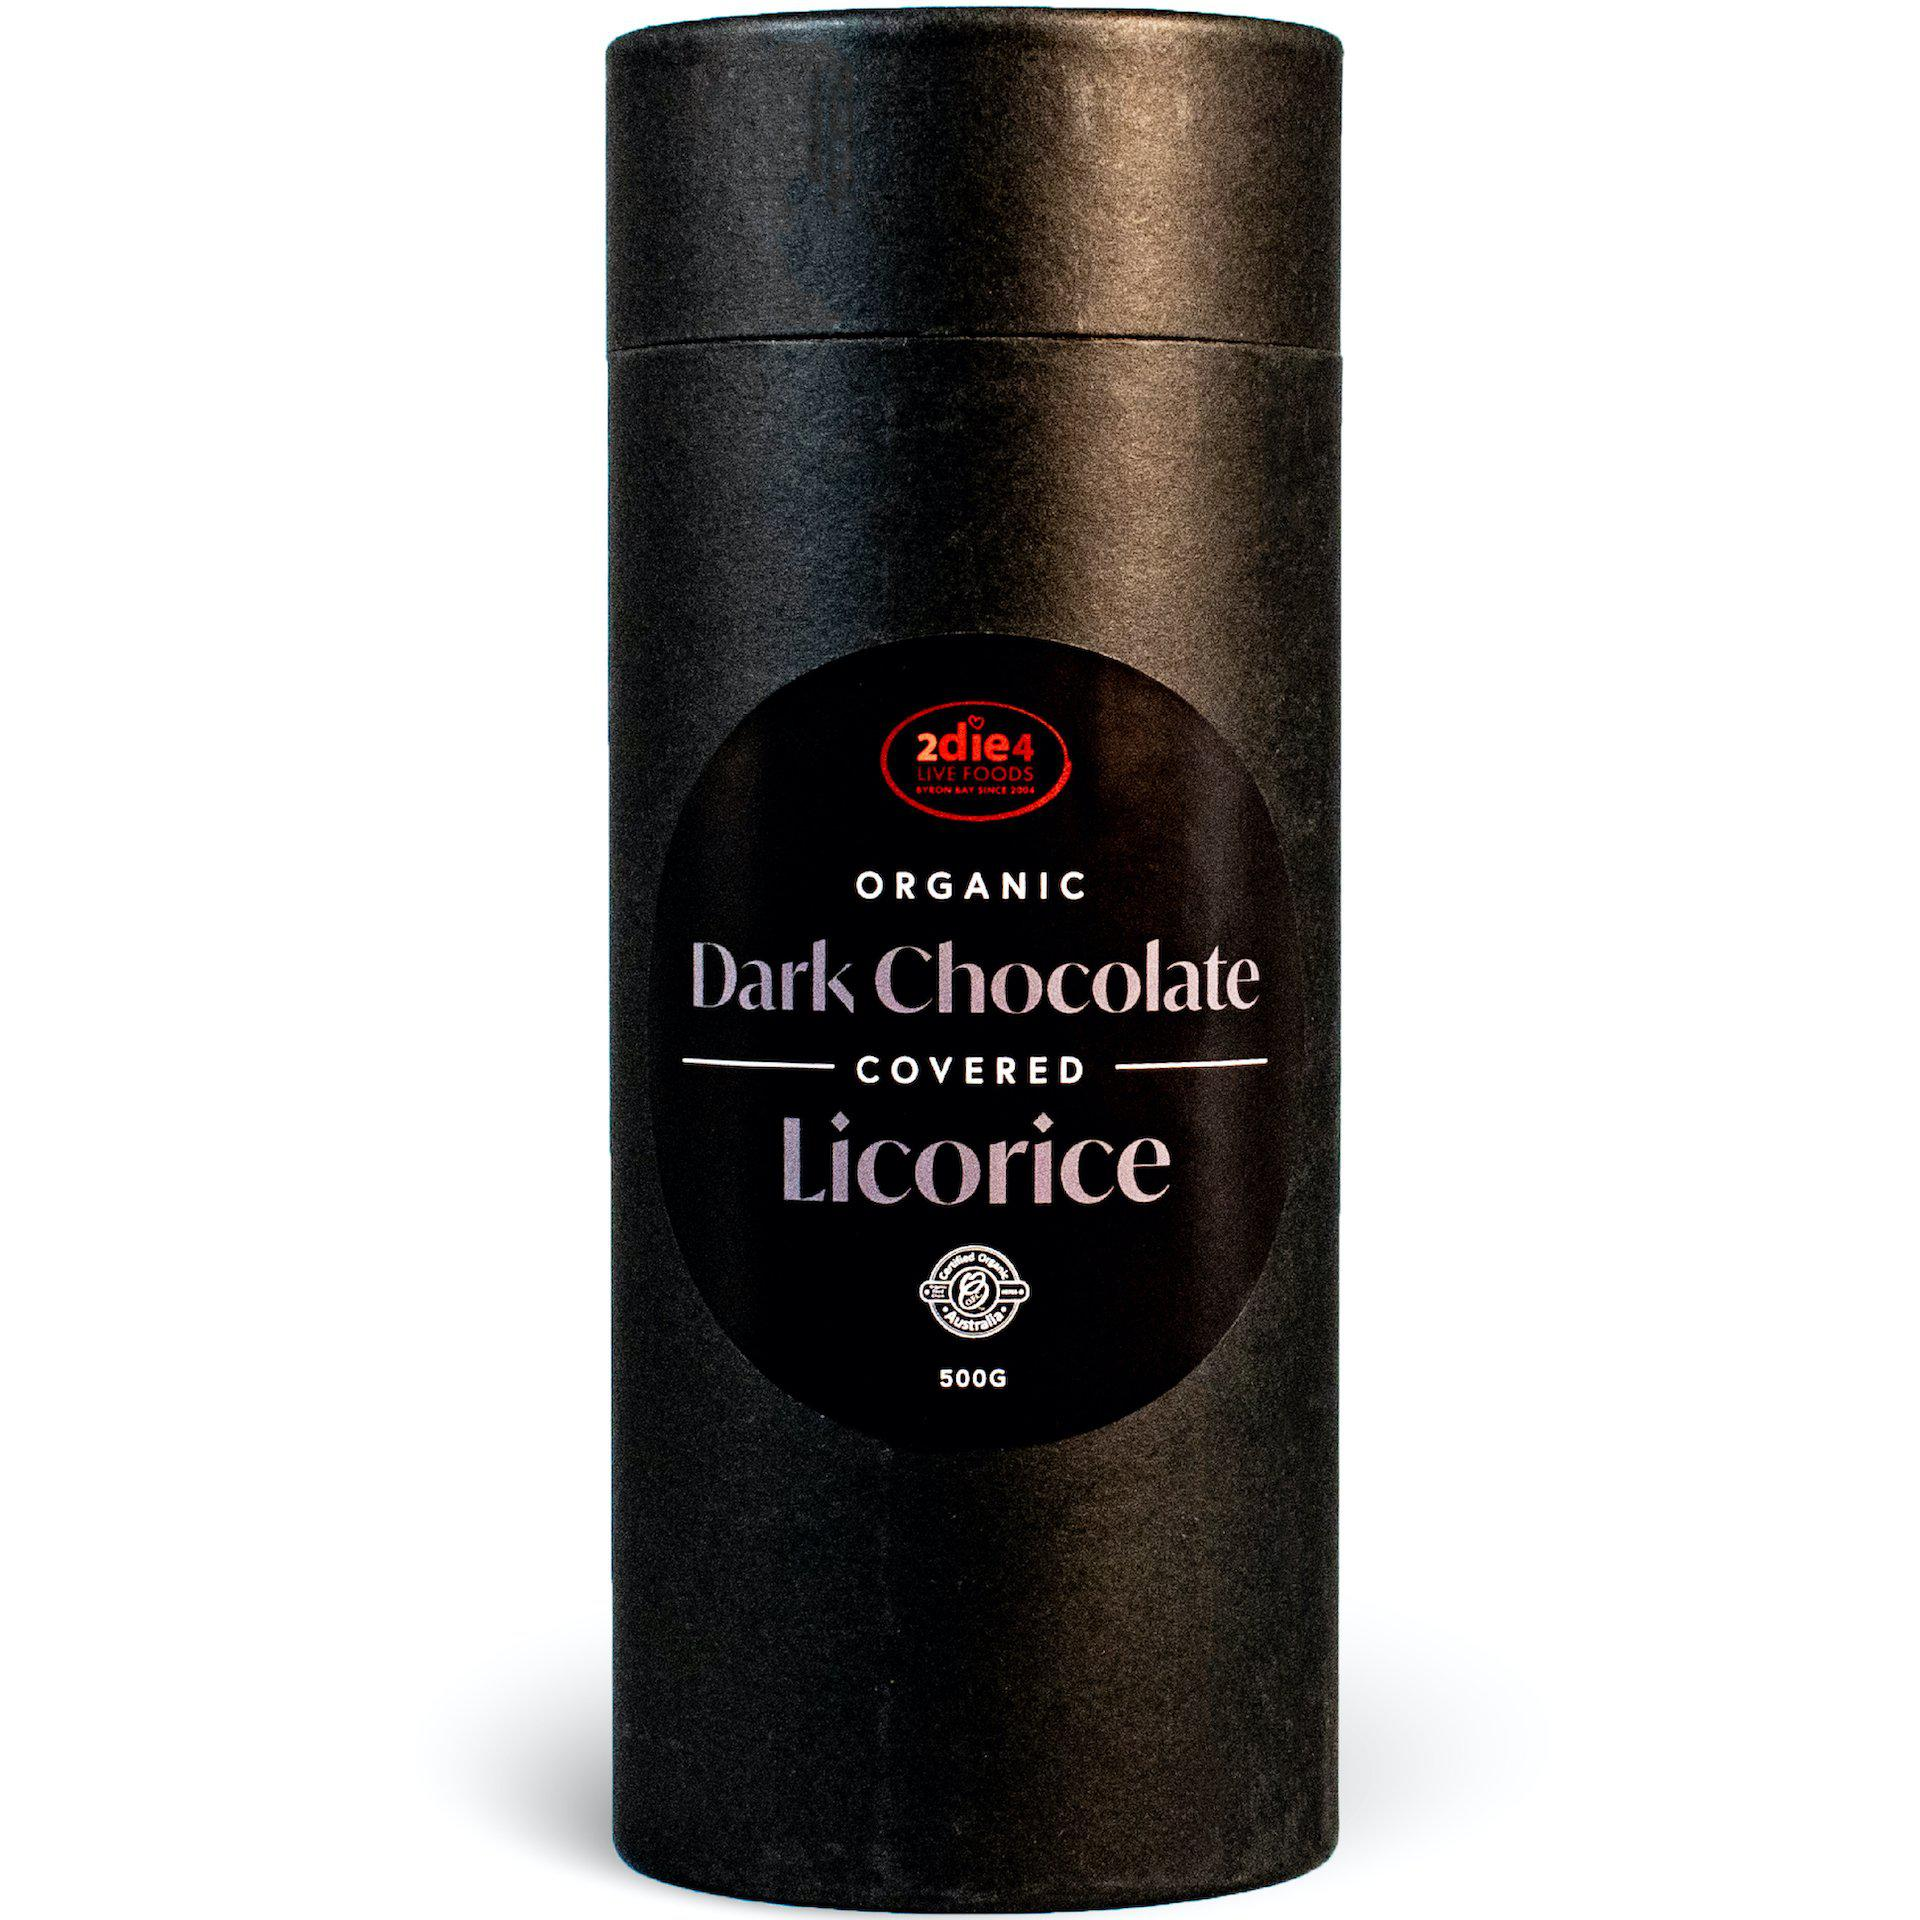 Organic Dark Chocolate Coated Licorice - 2die4livefoods